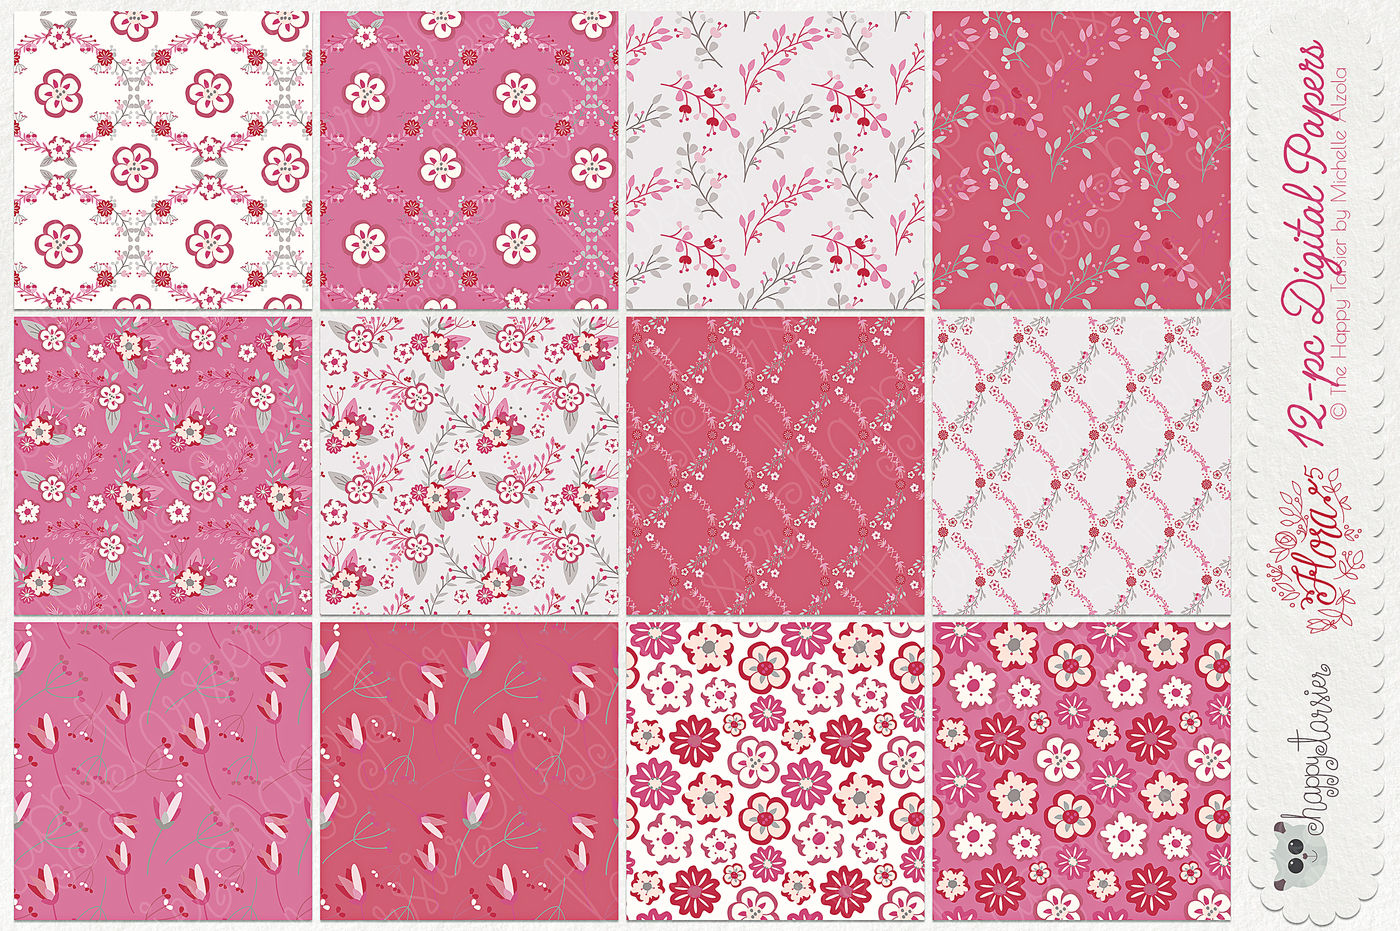 Flower Digital Papers And Seamless Pattern Designs Flora 05